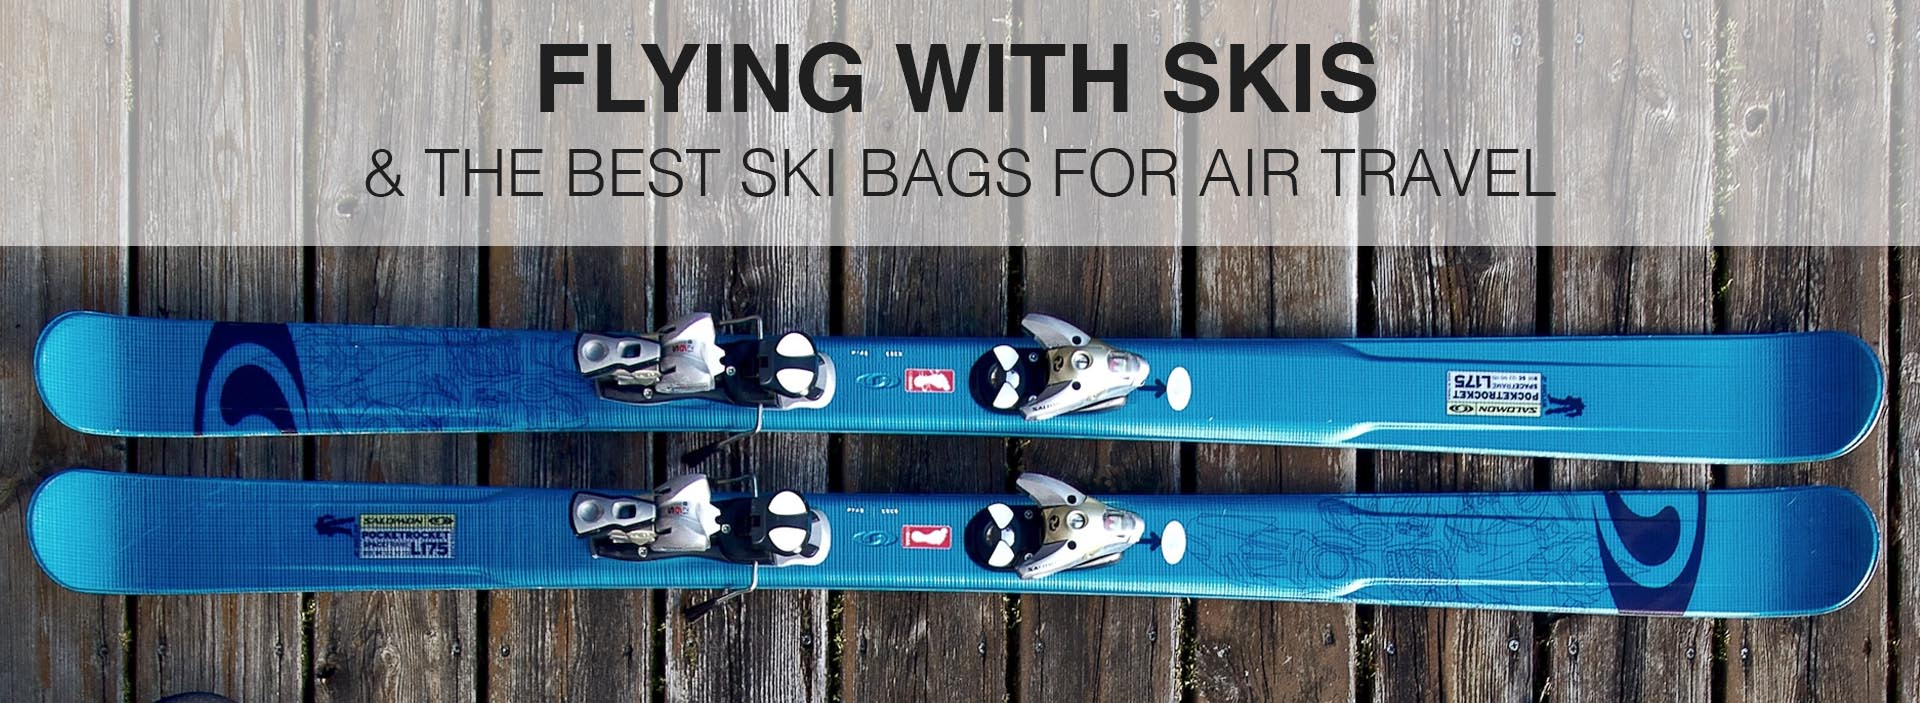 Flying with Skis  4 Best Ski Bags for Air Travel   Other Things to Know b61c7ee4d